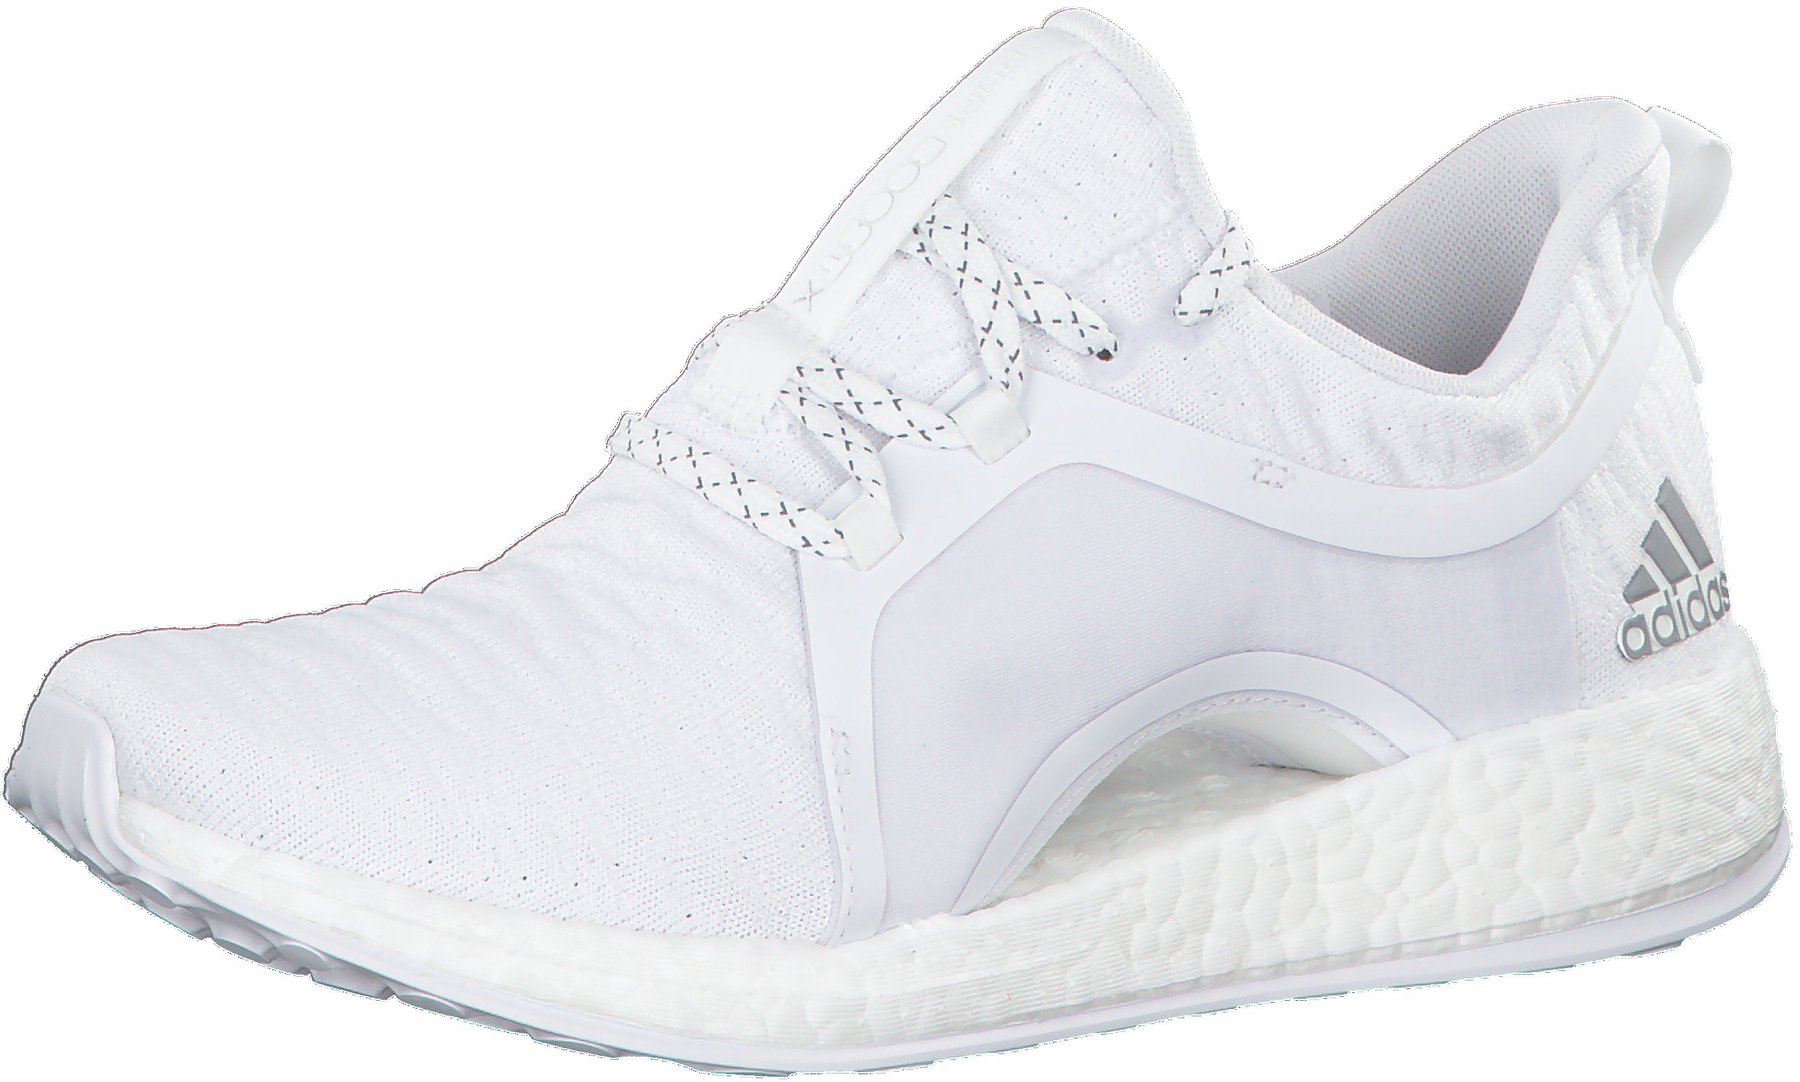 Adidas Pure Boost X Women